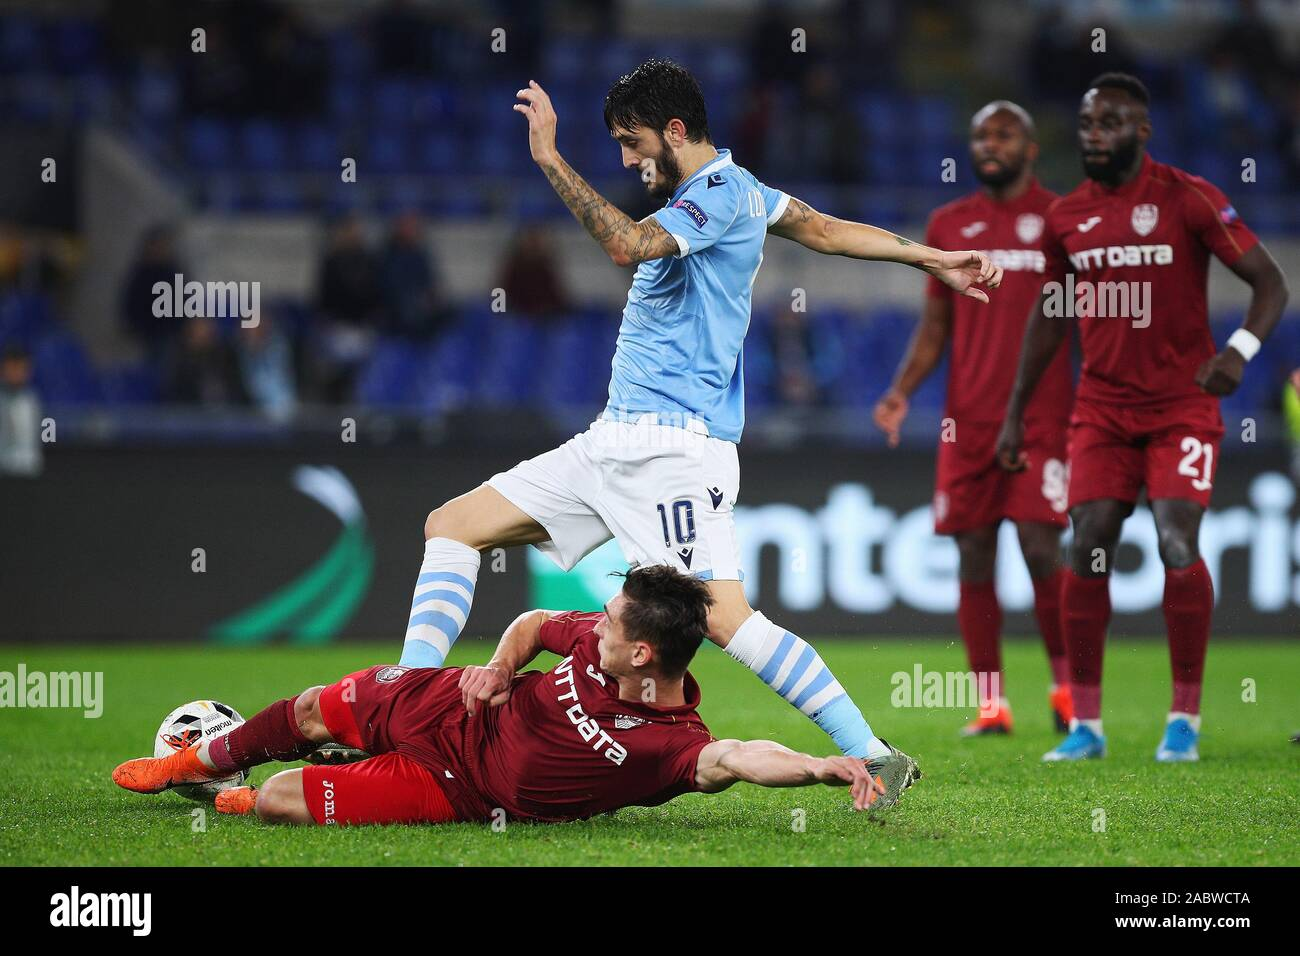 Luis Alberto of Lazio (U) and Andrei Peteleu of Cluj (D) in action during the UEFA Europa League, Group E football match between SS Lazio and CFR Cluj on November 28, 2019 at Stadio Olimpico in Rome, Italy - Photo Federico Proietti/ESPA-Images Stock Photo